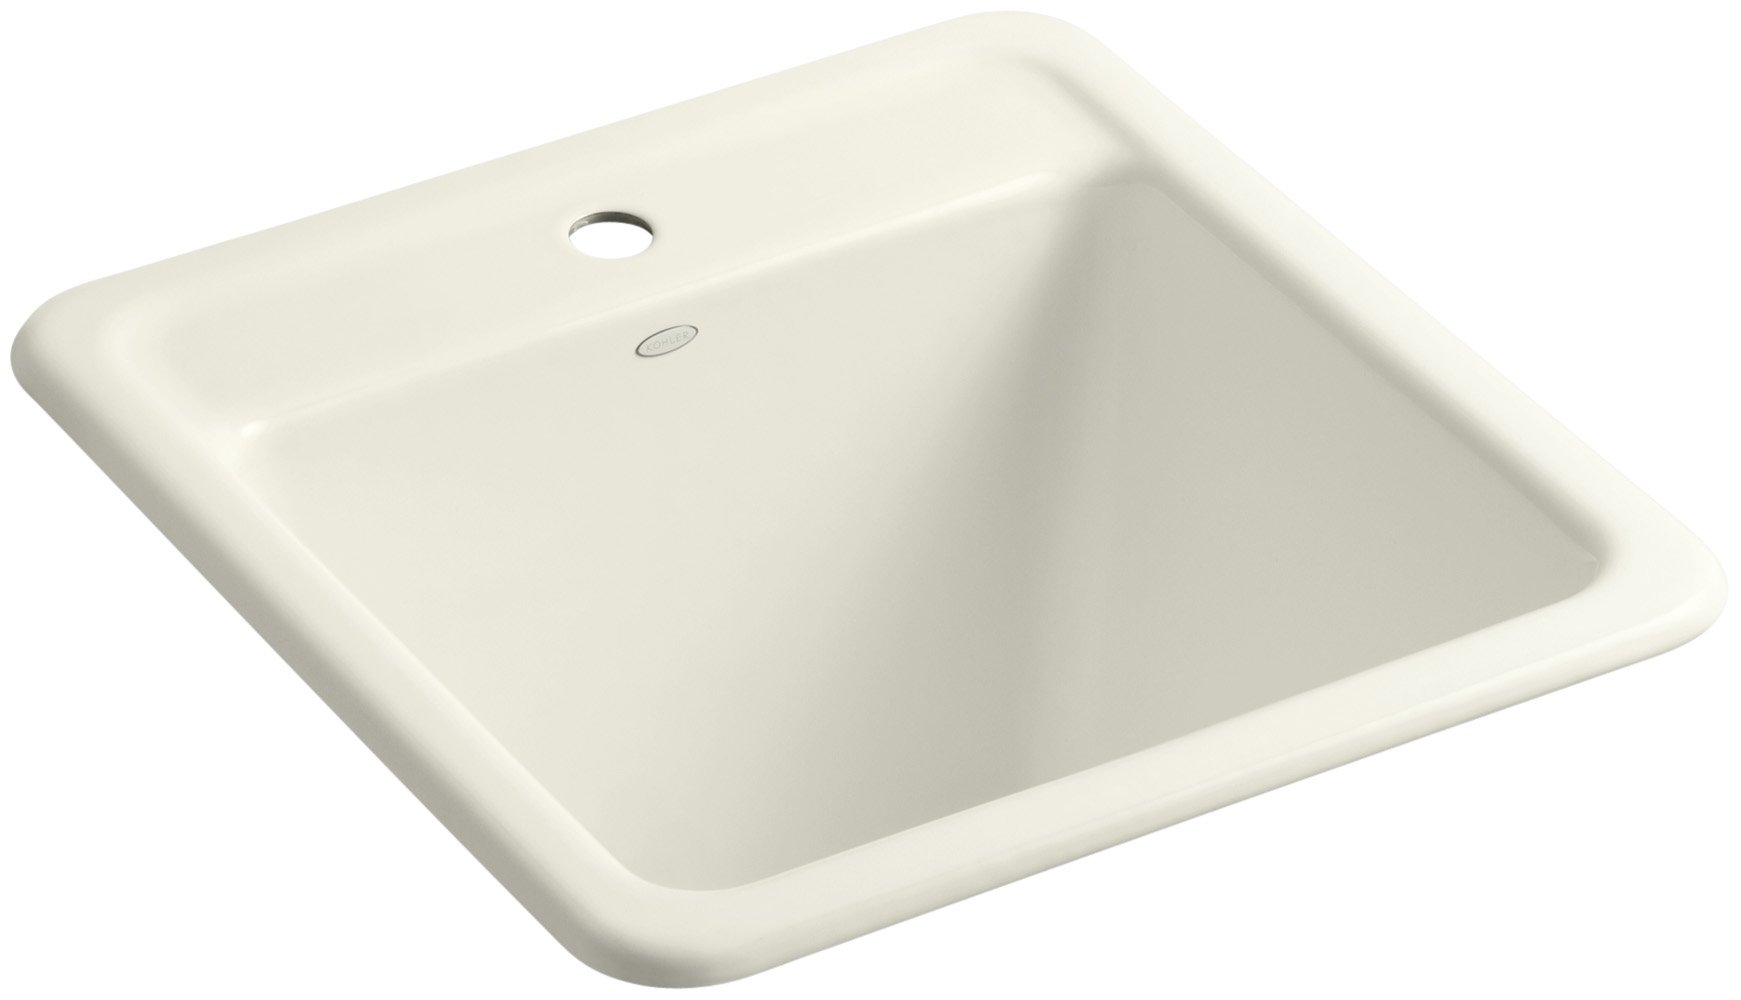 KOHLER K-19022-1-96 Park Falls Top-Mount/Undermount Utility Sink with Single Faucet Hole, Biscuit